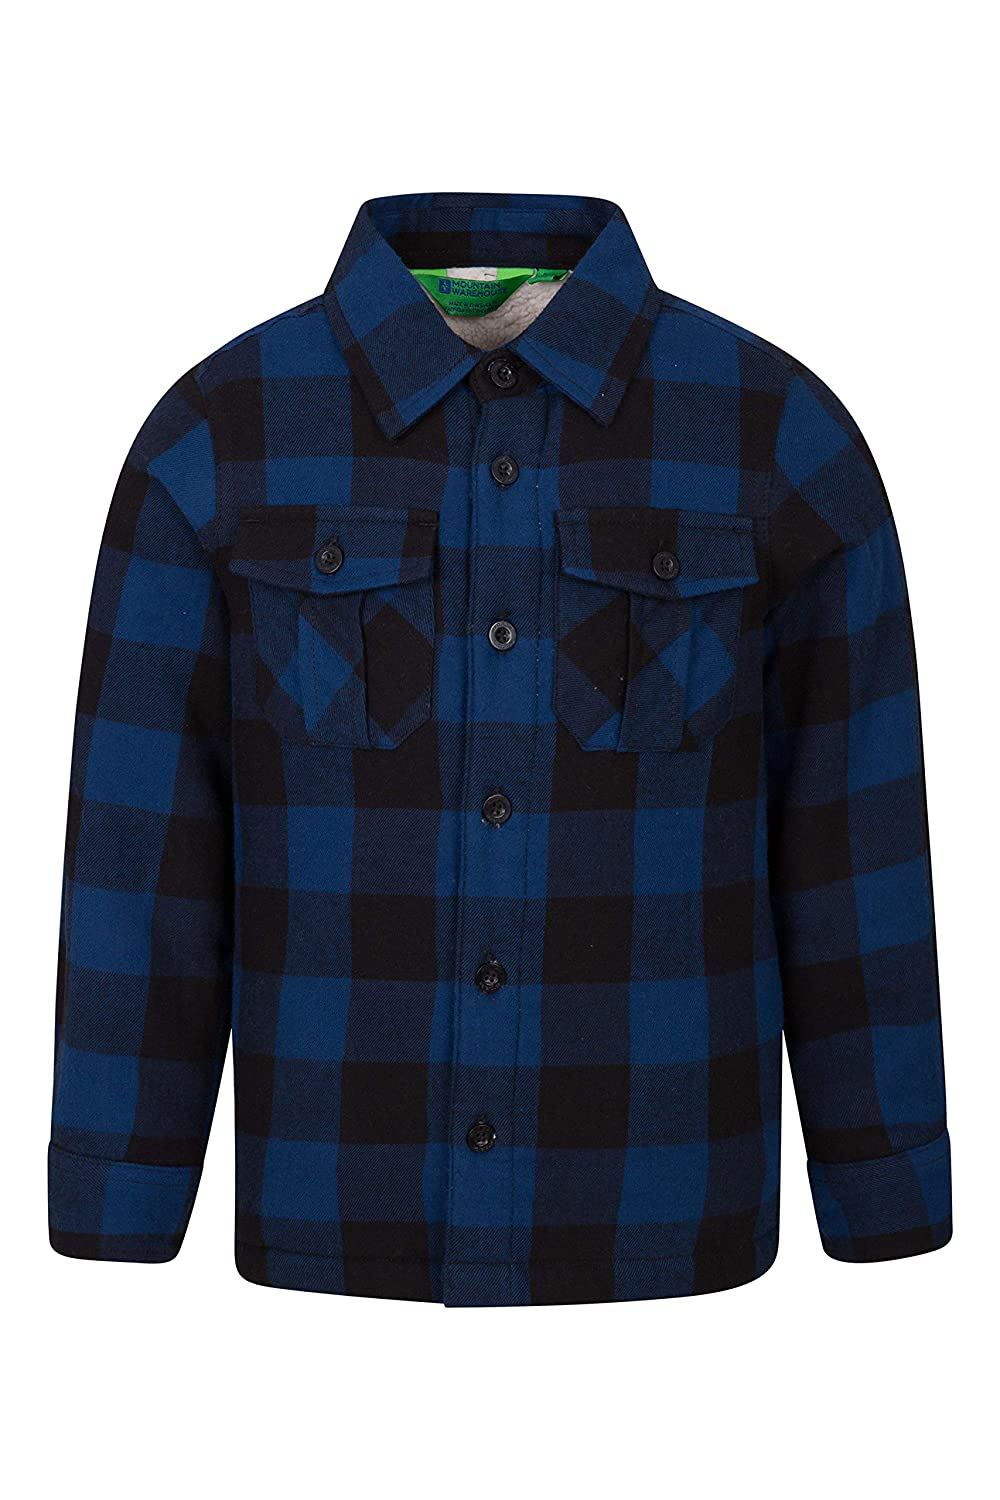 Mountain Warehouse Jackson Youth Shacket for Boy - Mix between Flannel Shirt and Jacket with Button Pockets & Trendy Plaid Pattern - 100% Cotton Outer & Soft Furry Inside Navy 5-6 years